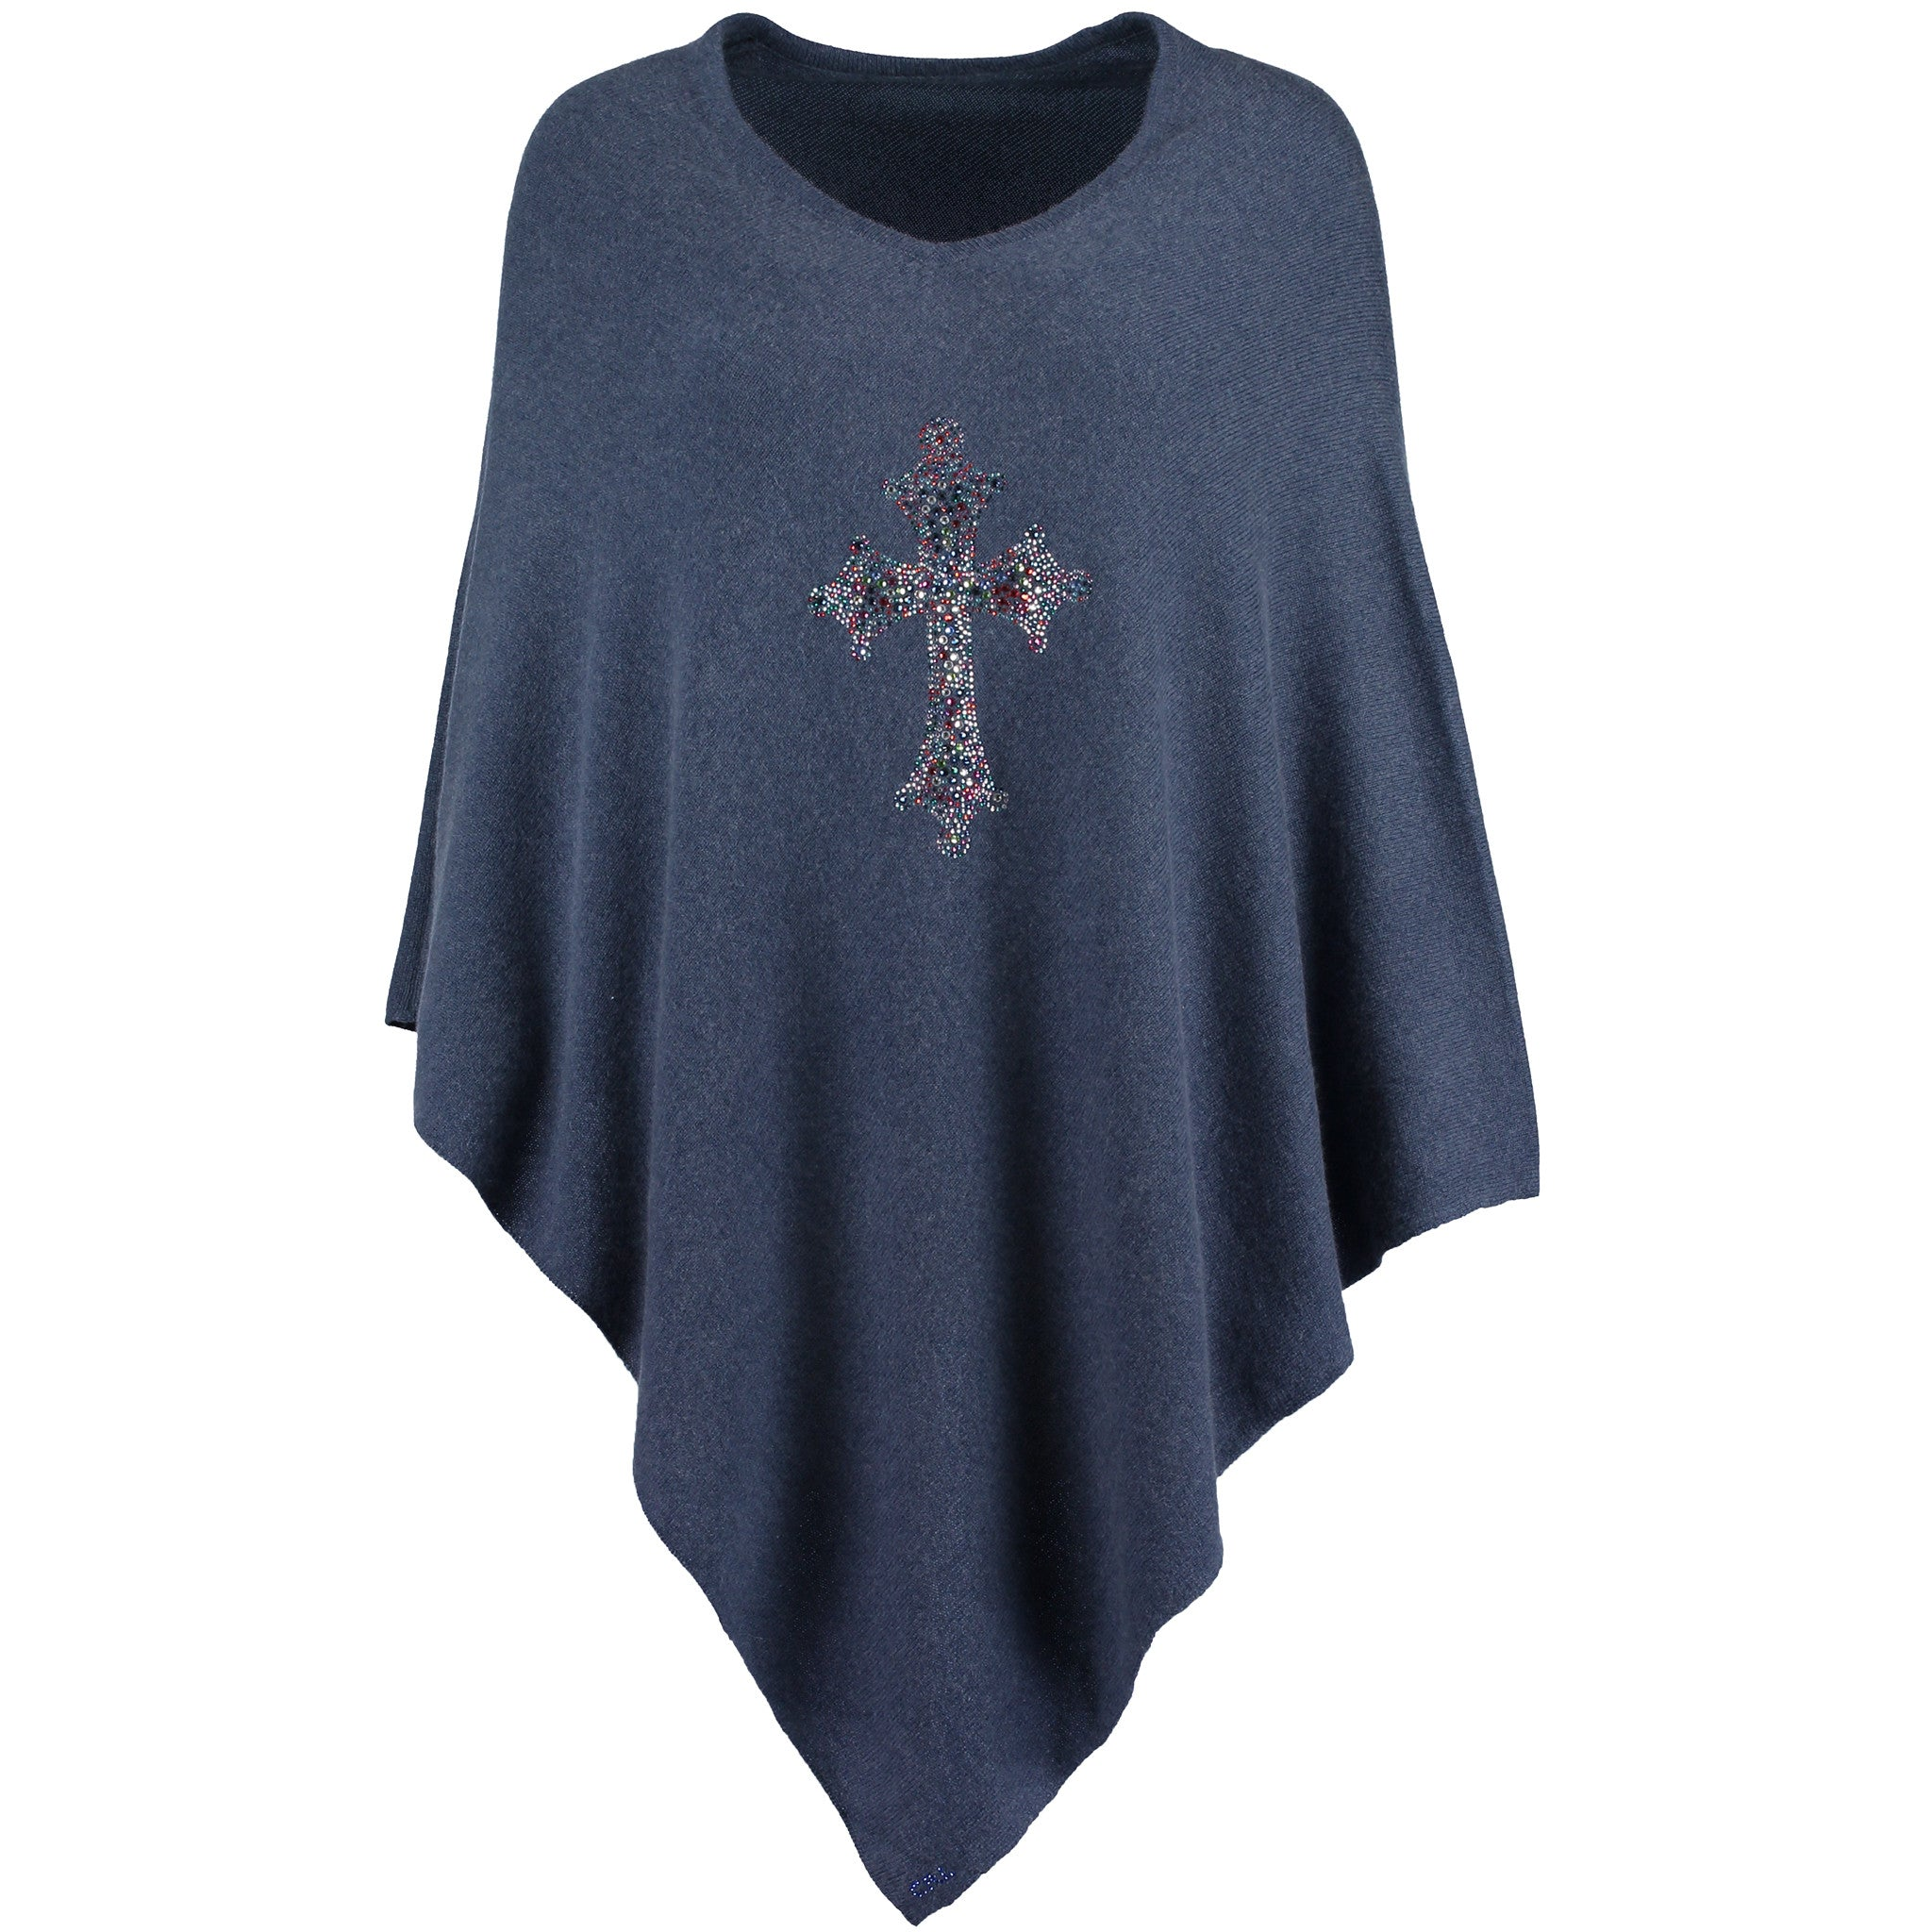 Blue CROSS crystal embellished cashmere poncho by Cashmere Rebel